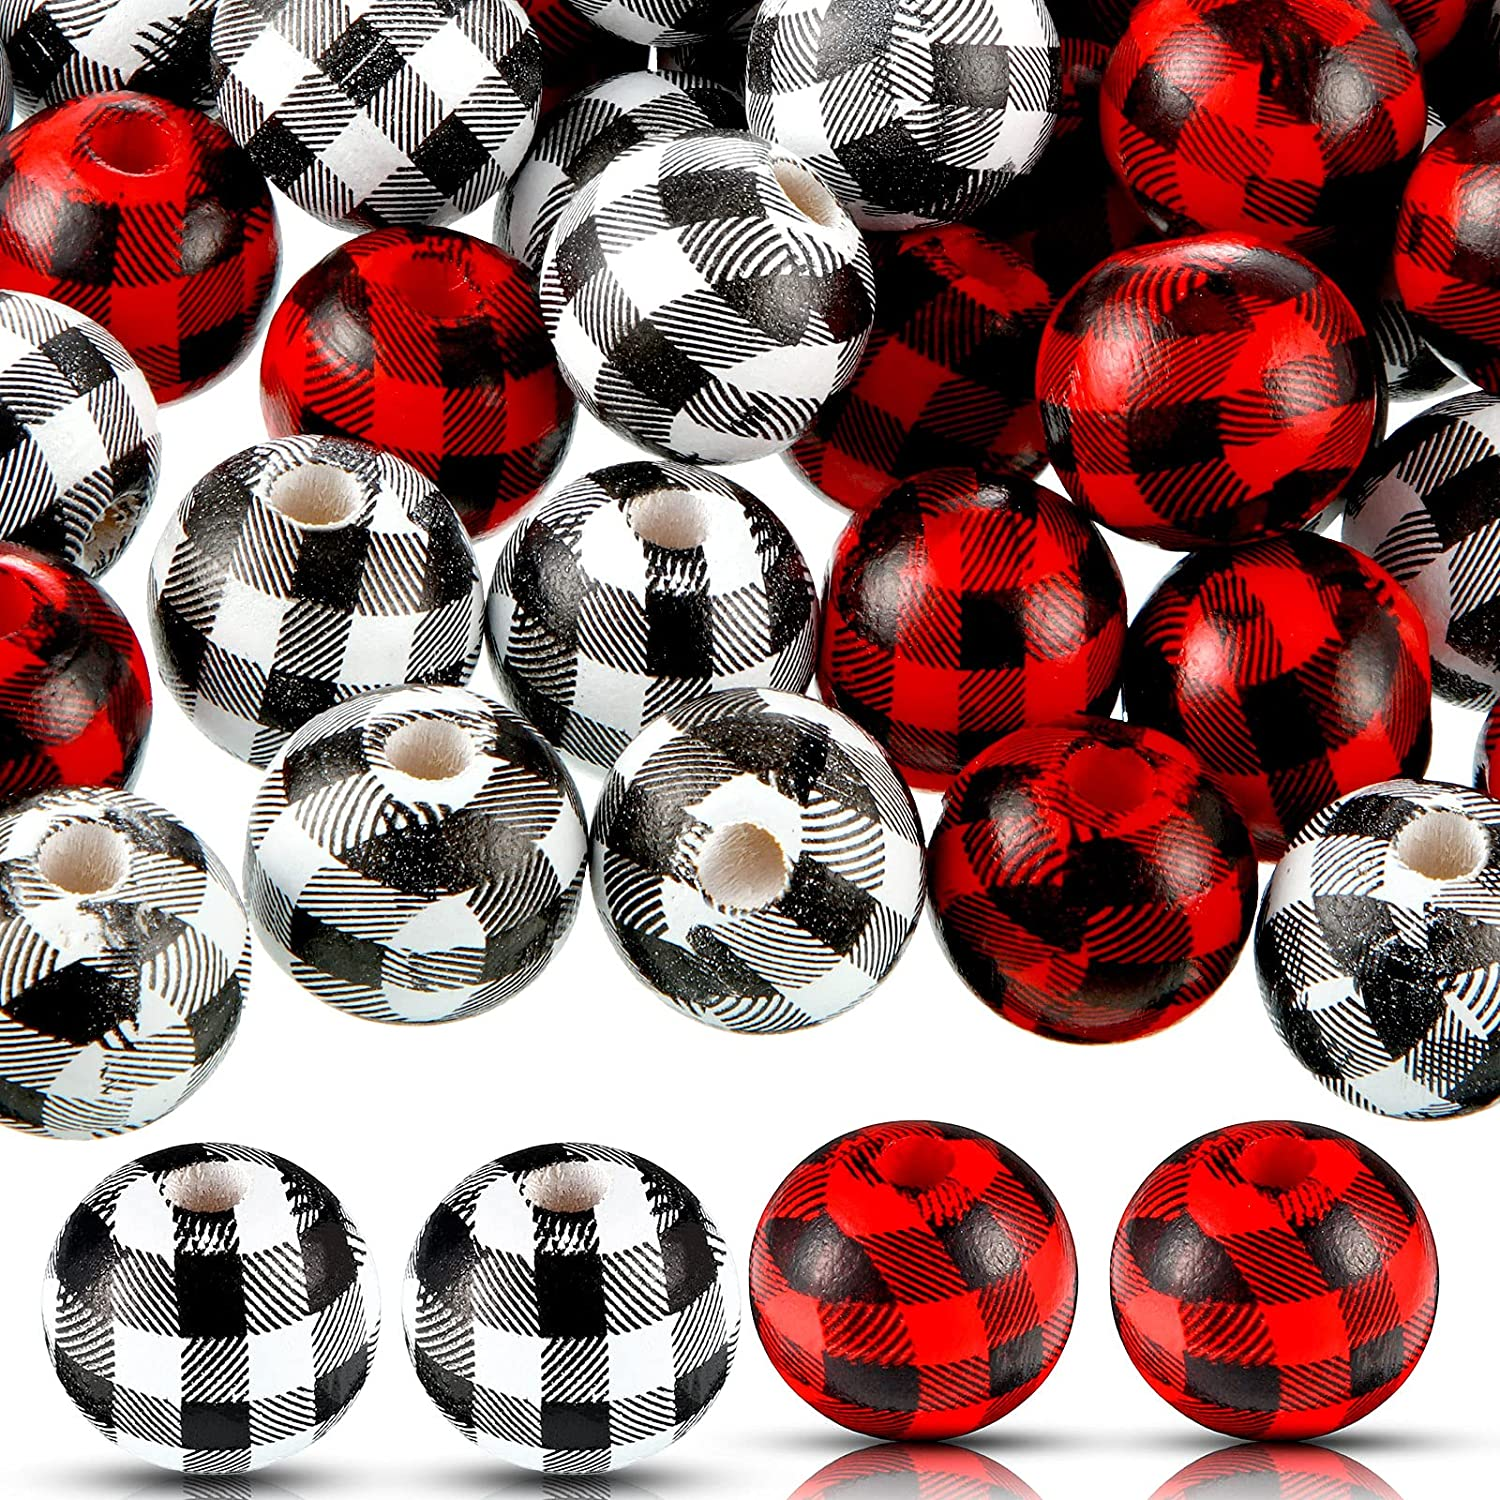 100 Pieces Plaid Wood Beads Wooden Rus Max 84% OFF Ranking TOP12 Buffalo Print